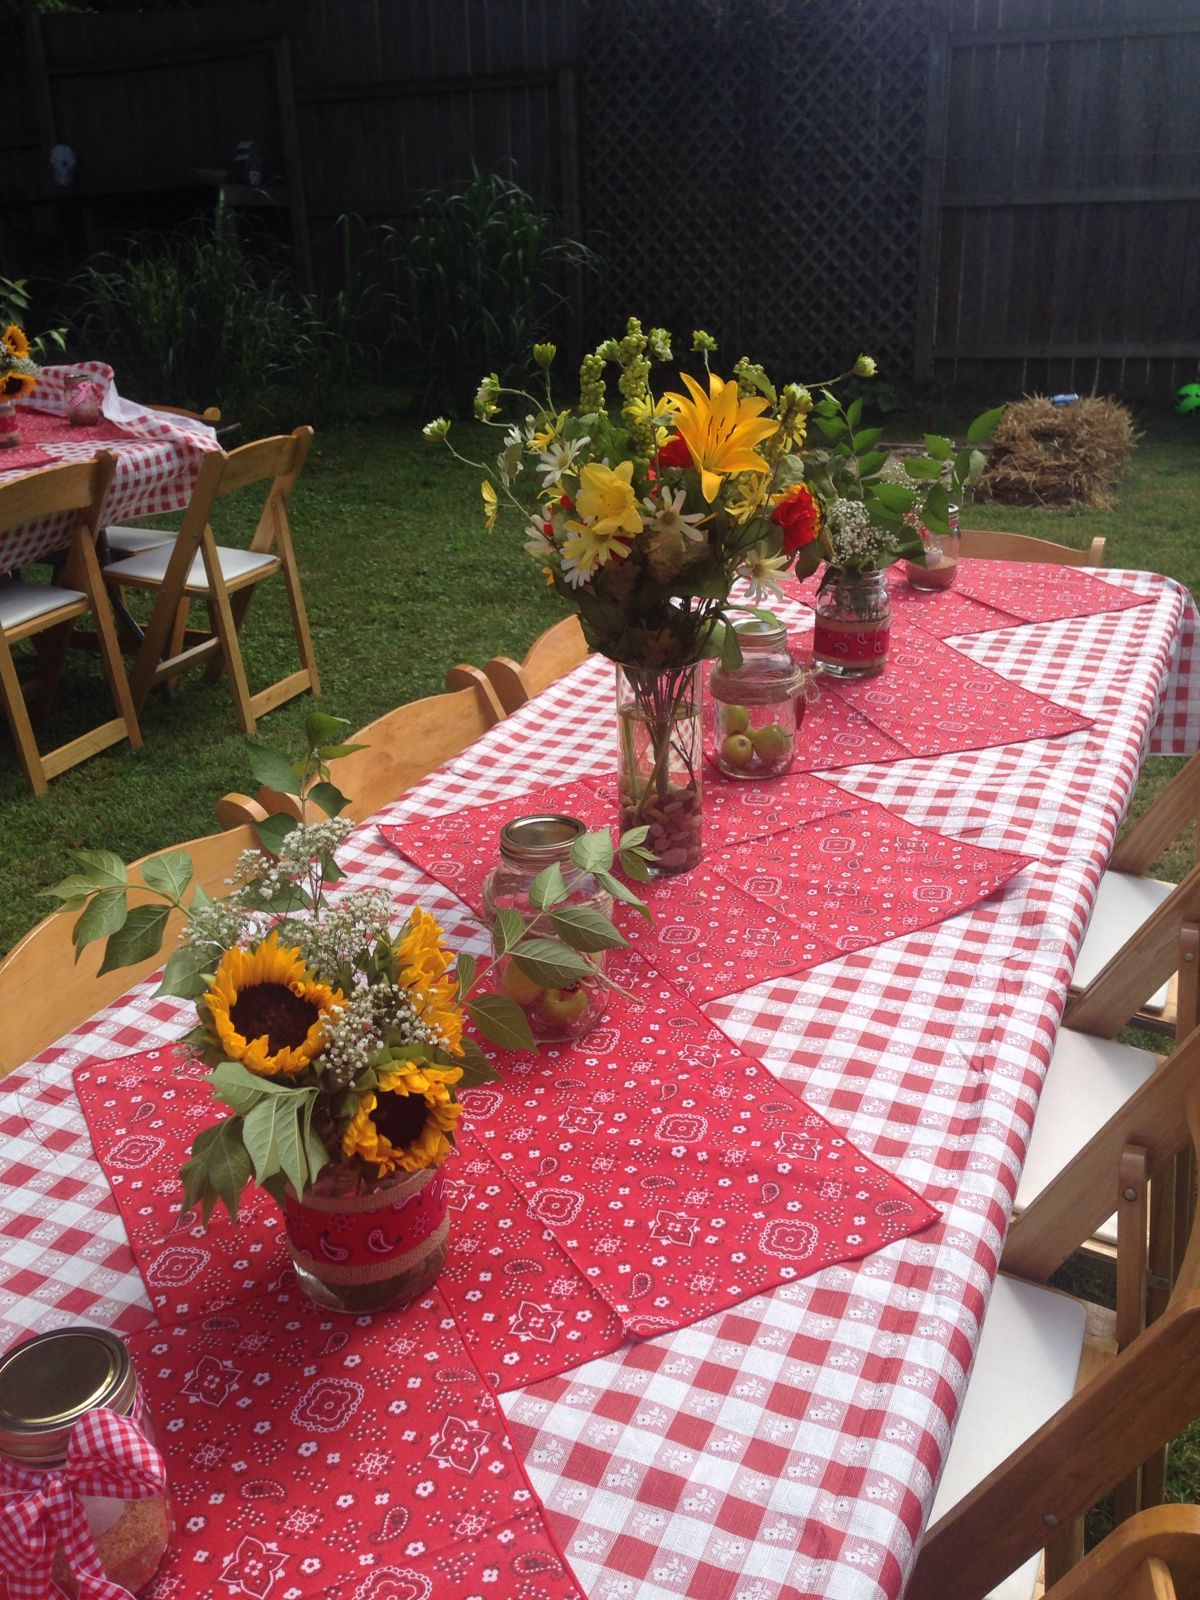 Picnic Themed Decorations Our Picnic Themed Outdoor Rehearsal Special Events